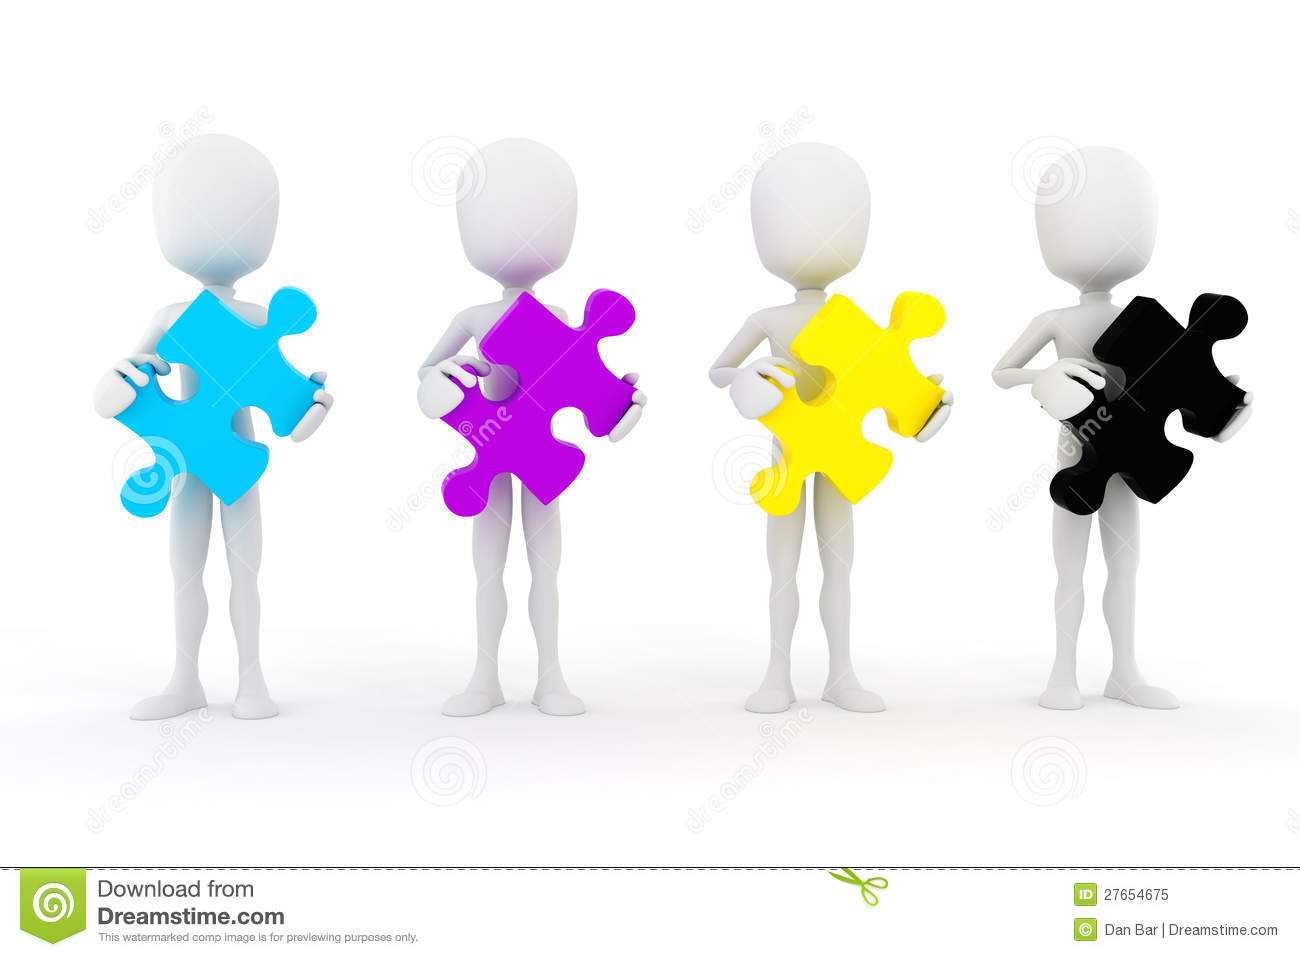 Cymk Puzzle 3d Man Holding Colorful Cmyk Puzzle Pieces Royalty Free